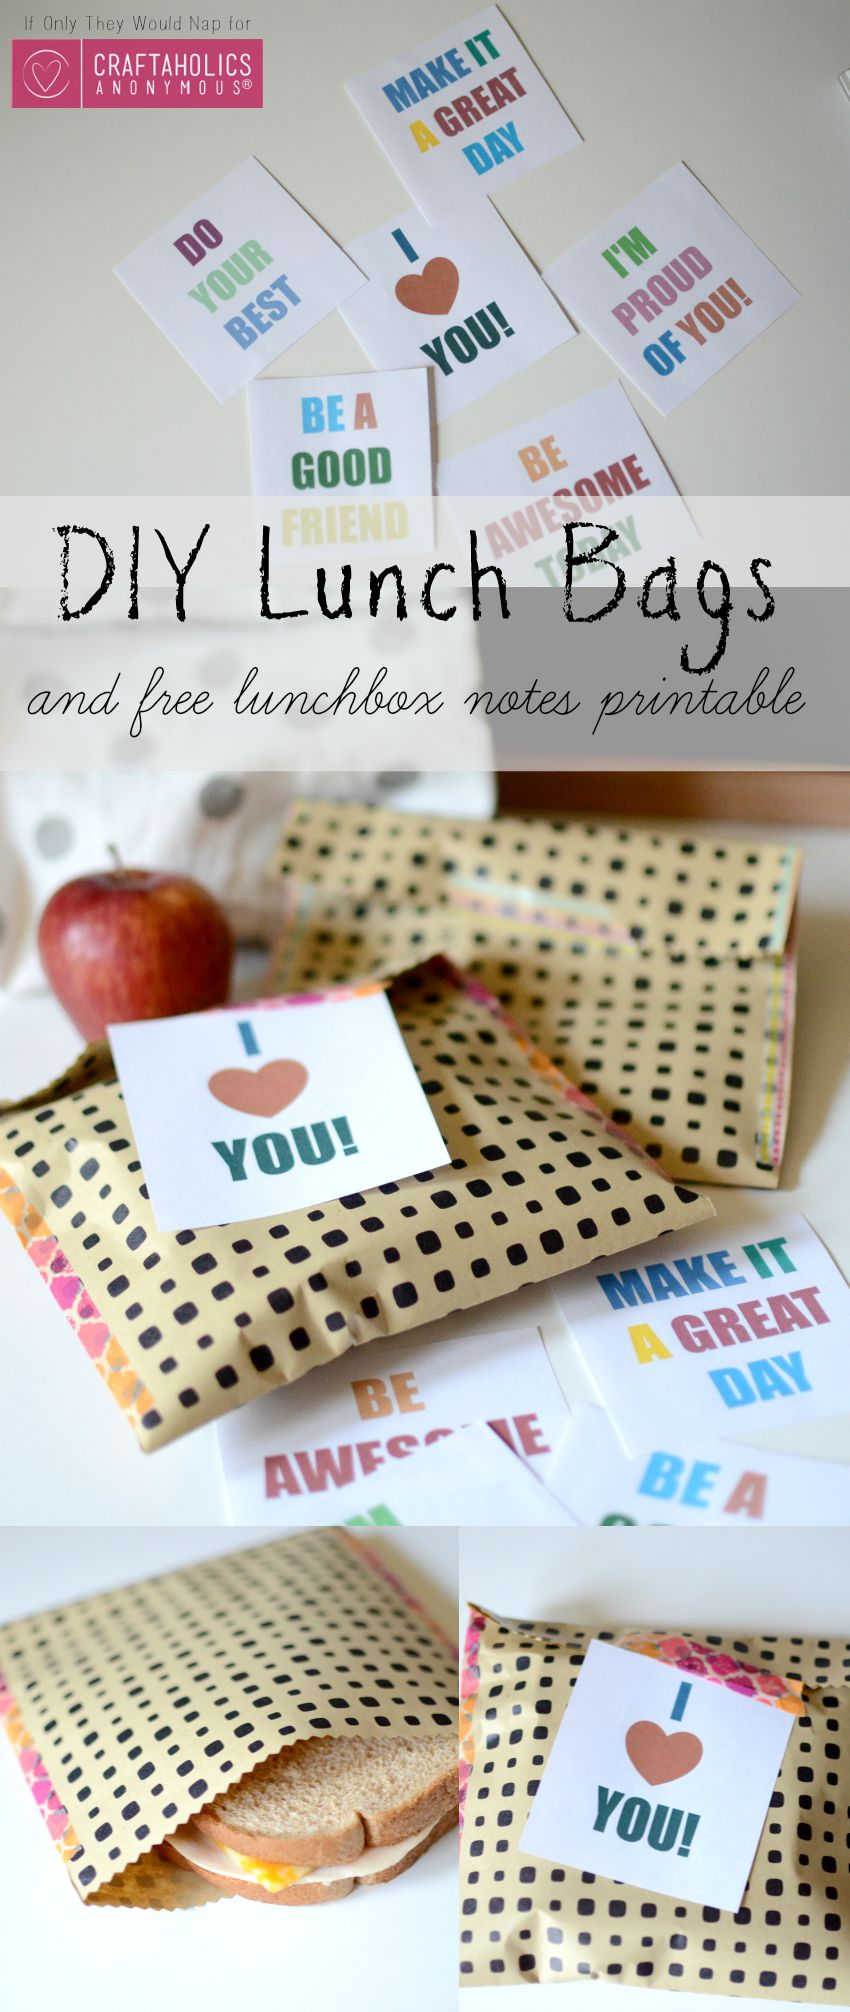 DIY Lunch Bags and free lunchbox notes printable 2